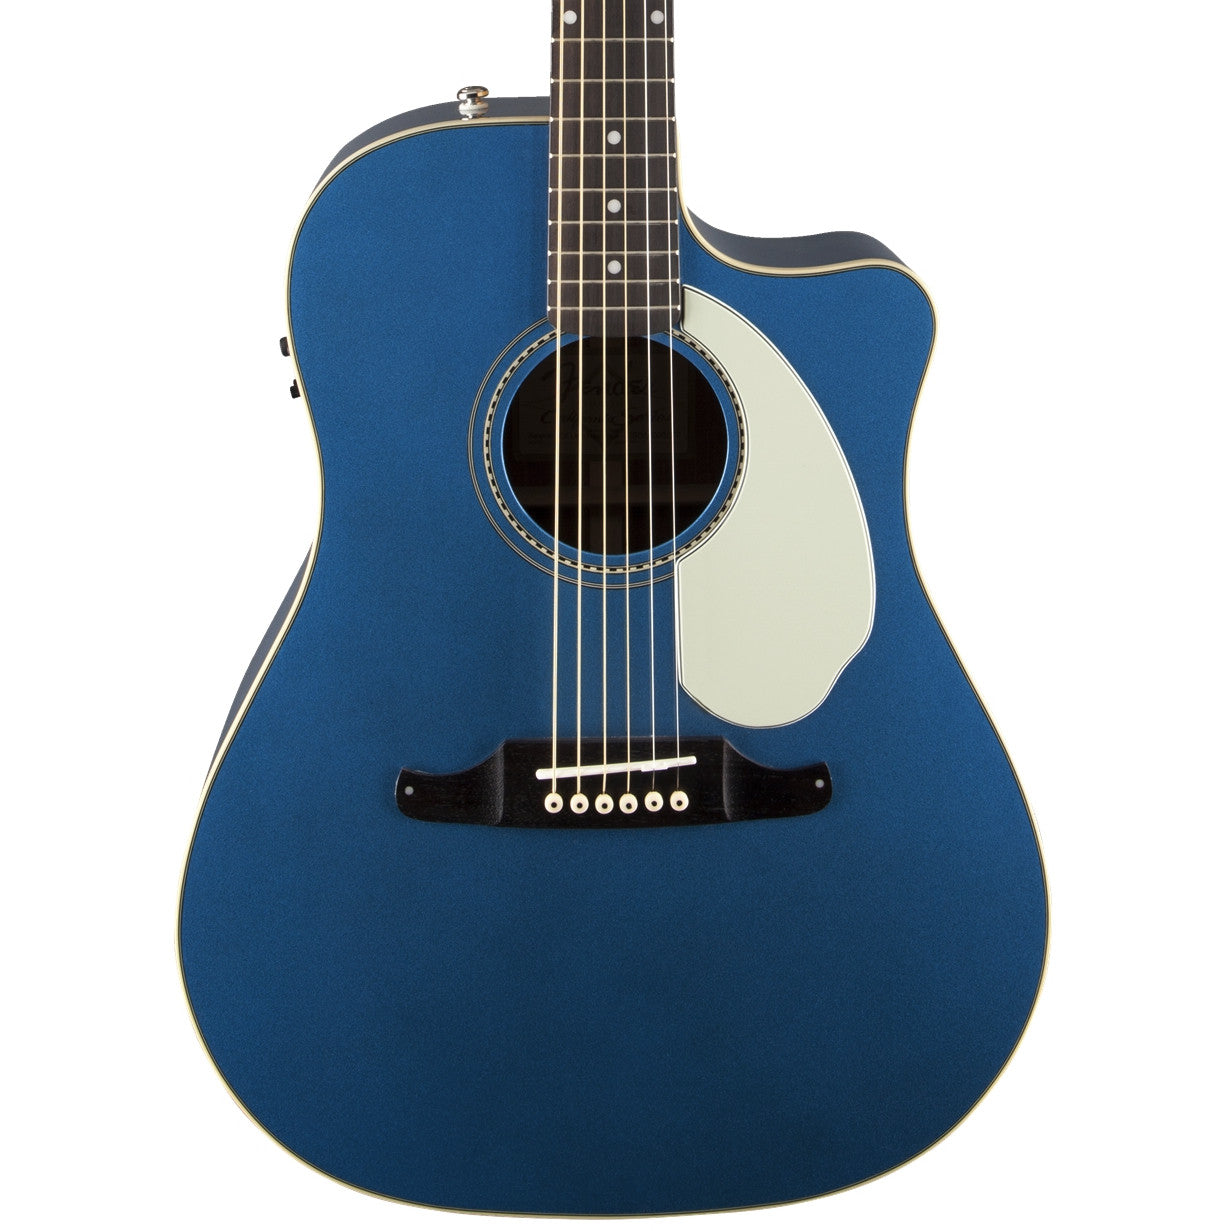 Fender Sonoran SCE Guitar - Lake Placid Blue | Music Experience | Shop Online | South Africa